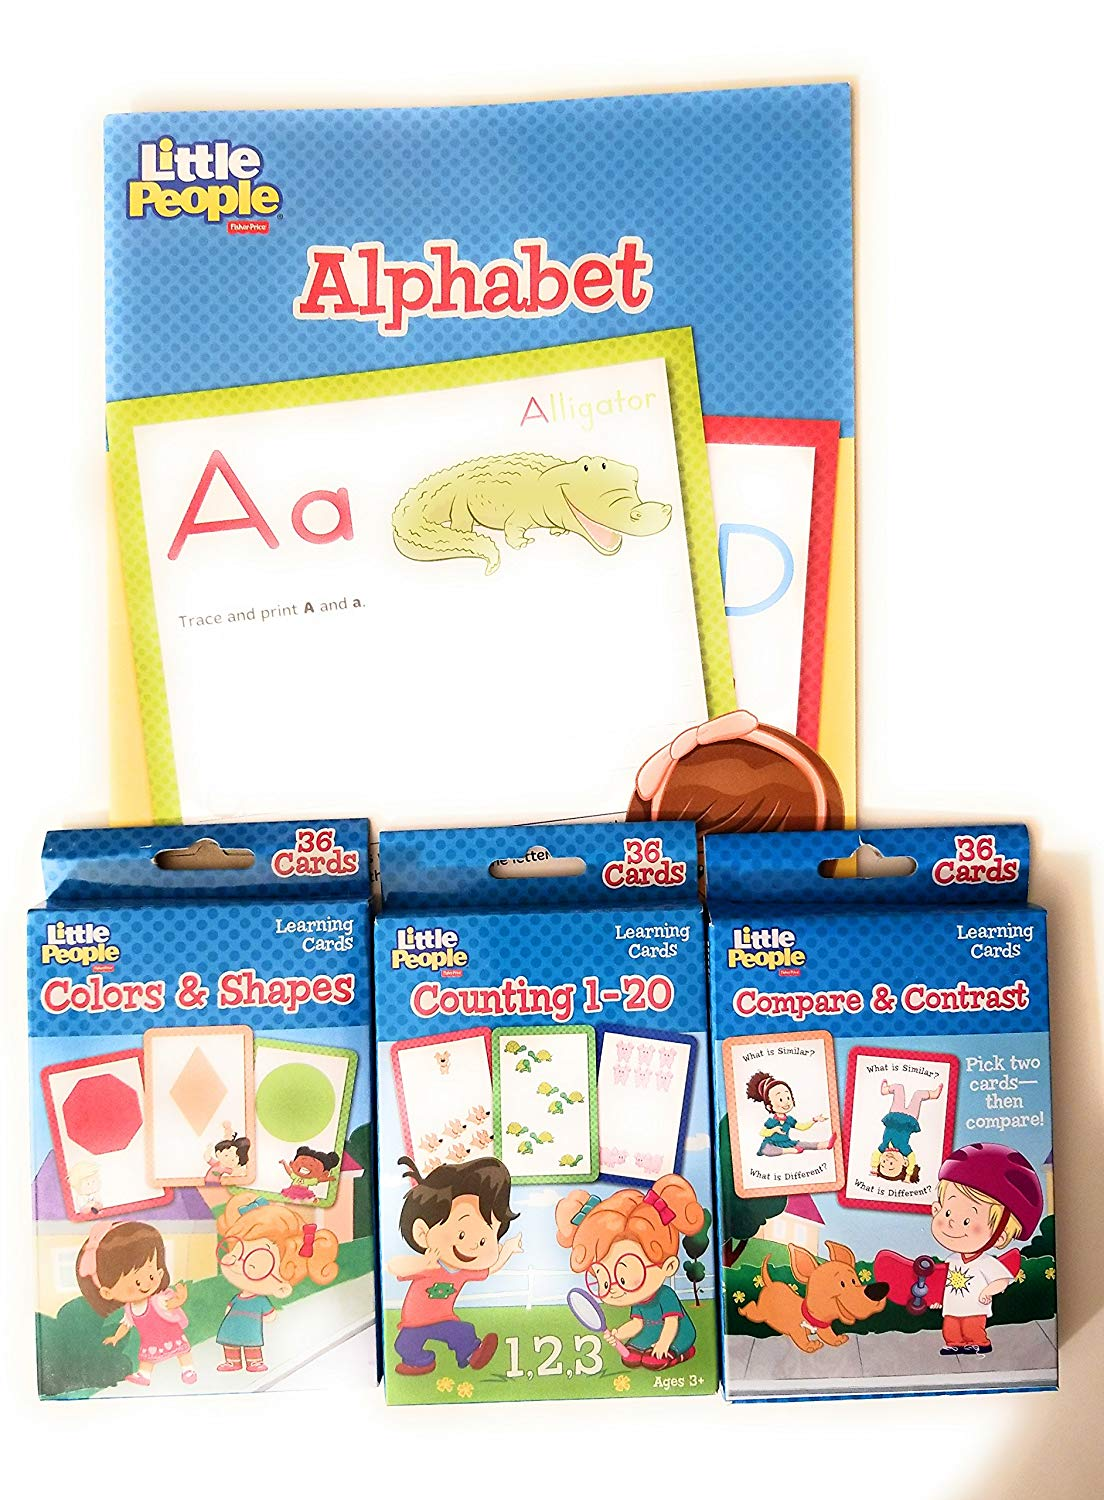 Back to School Student Toddler Pre-School Elementary School Classroom Teacher Student Pre-k Kindergarten 1st Grade Workbooks Alphabet Counting Compare Colors Little People Bonus 2pack of Crayons